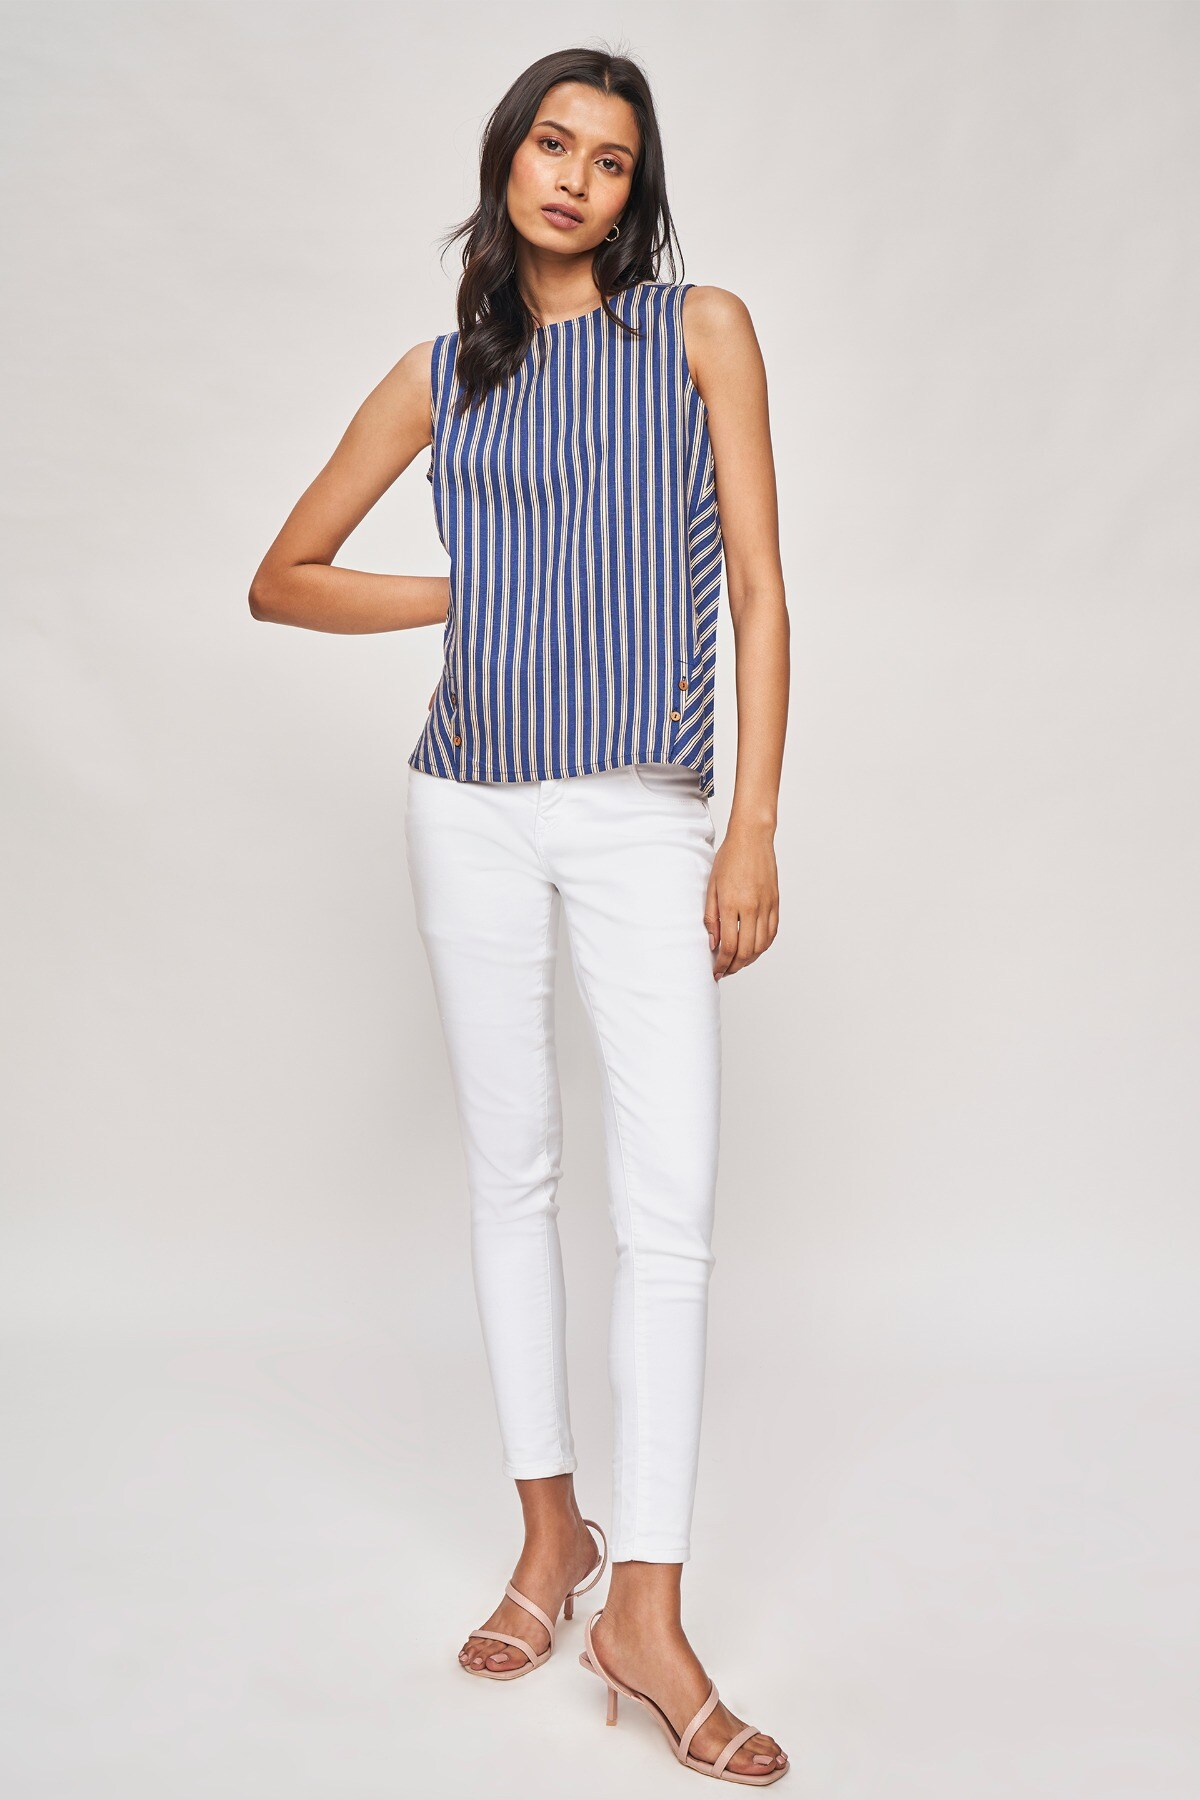 AND   Navy Blue Striped A-Line Top